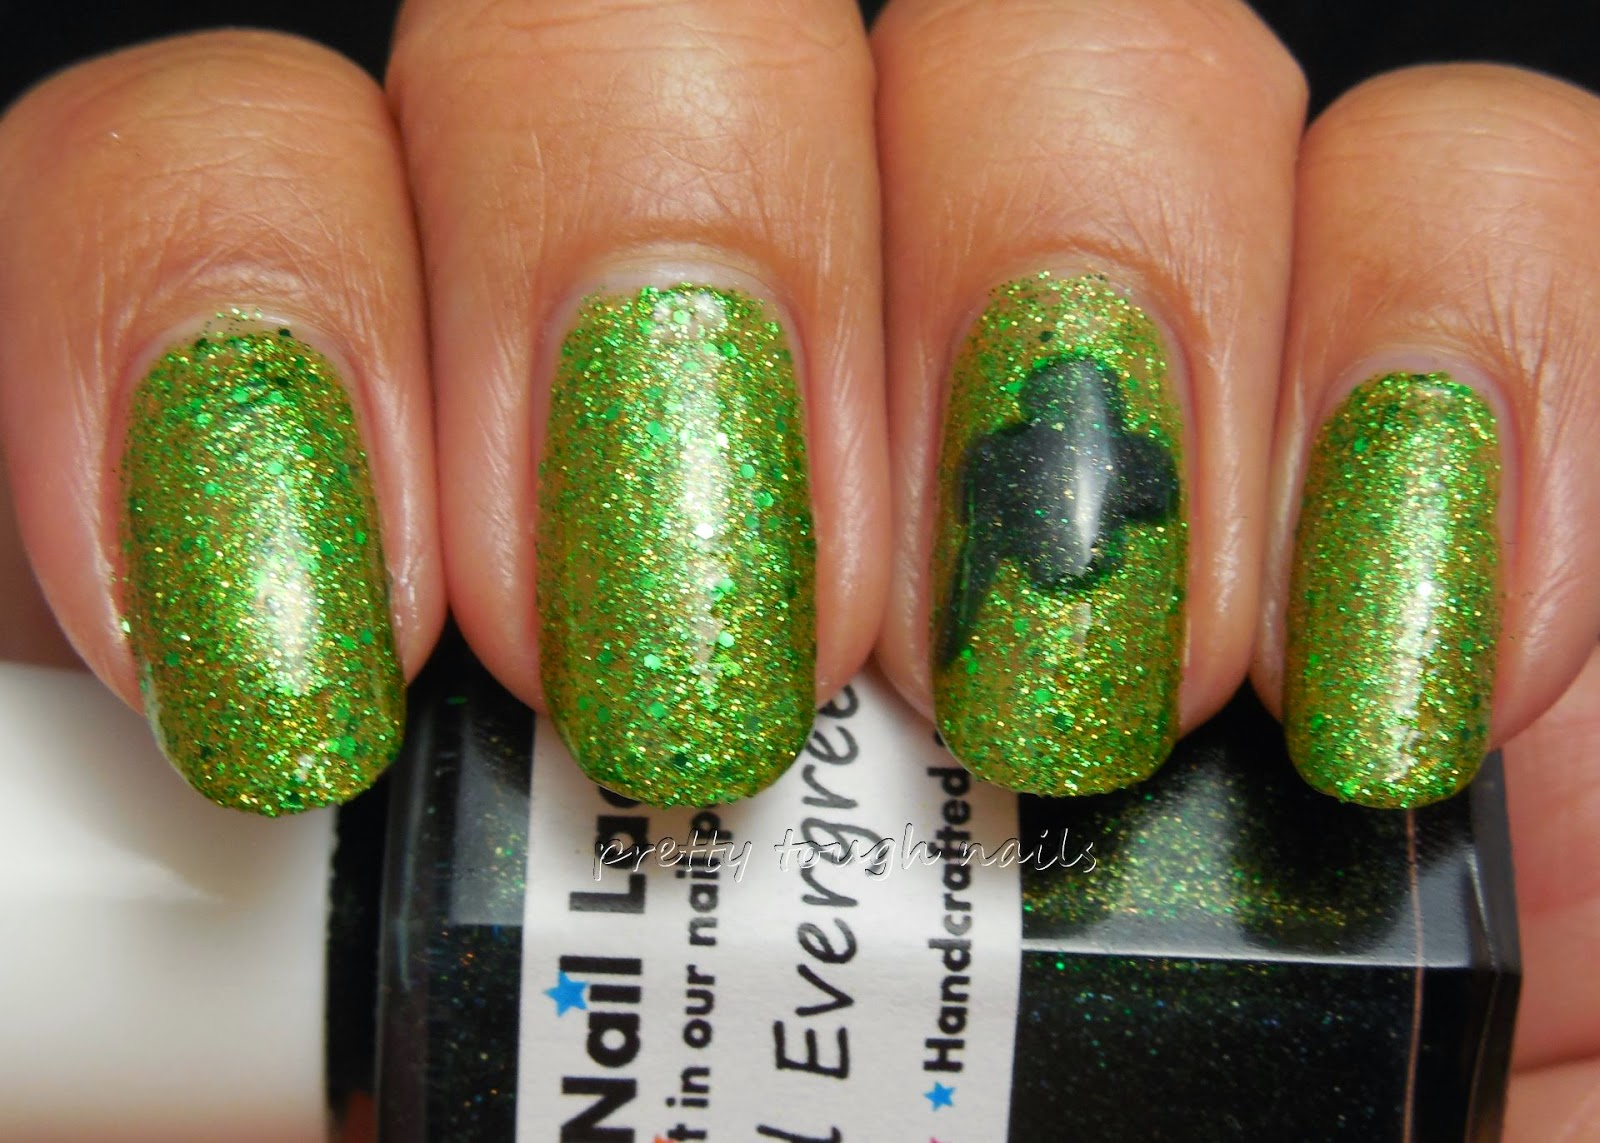 Butter London Swinger St Paddy's Nail Art